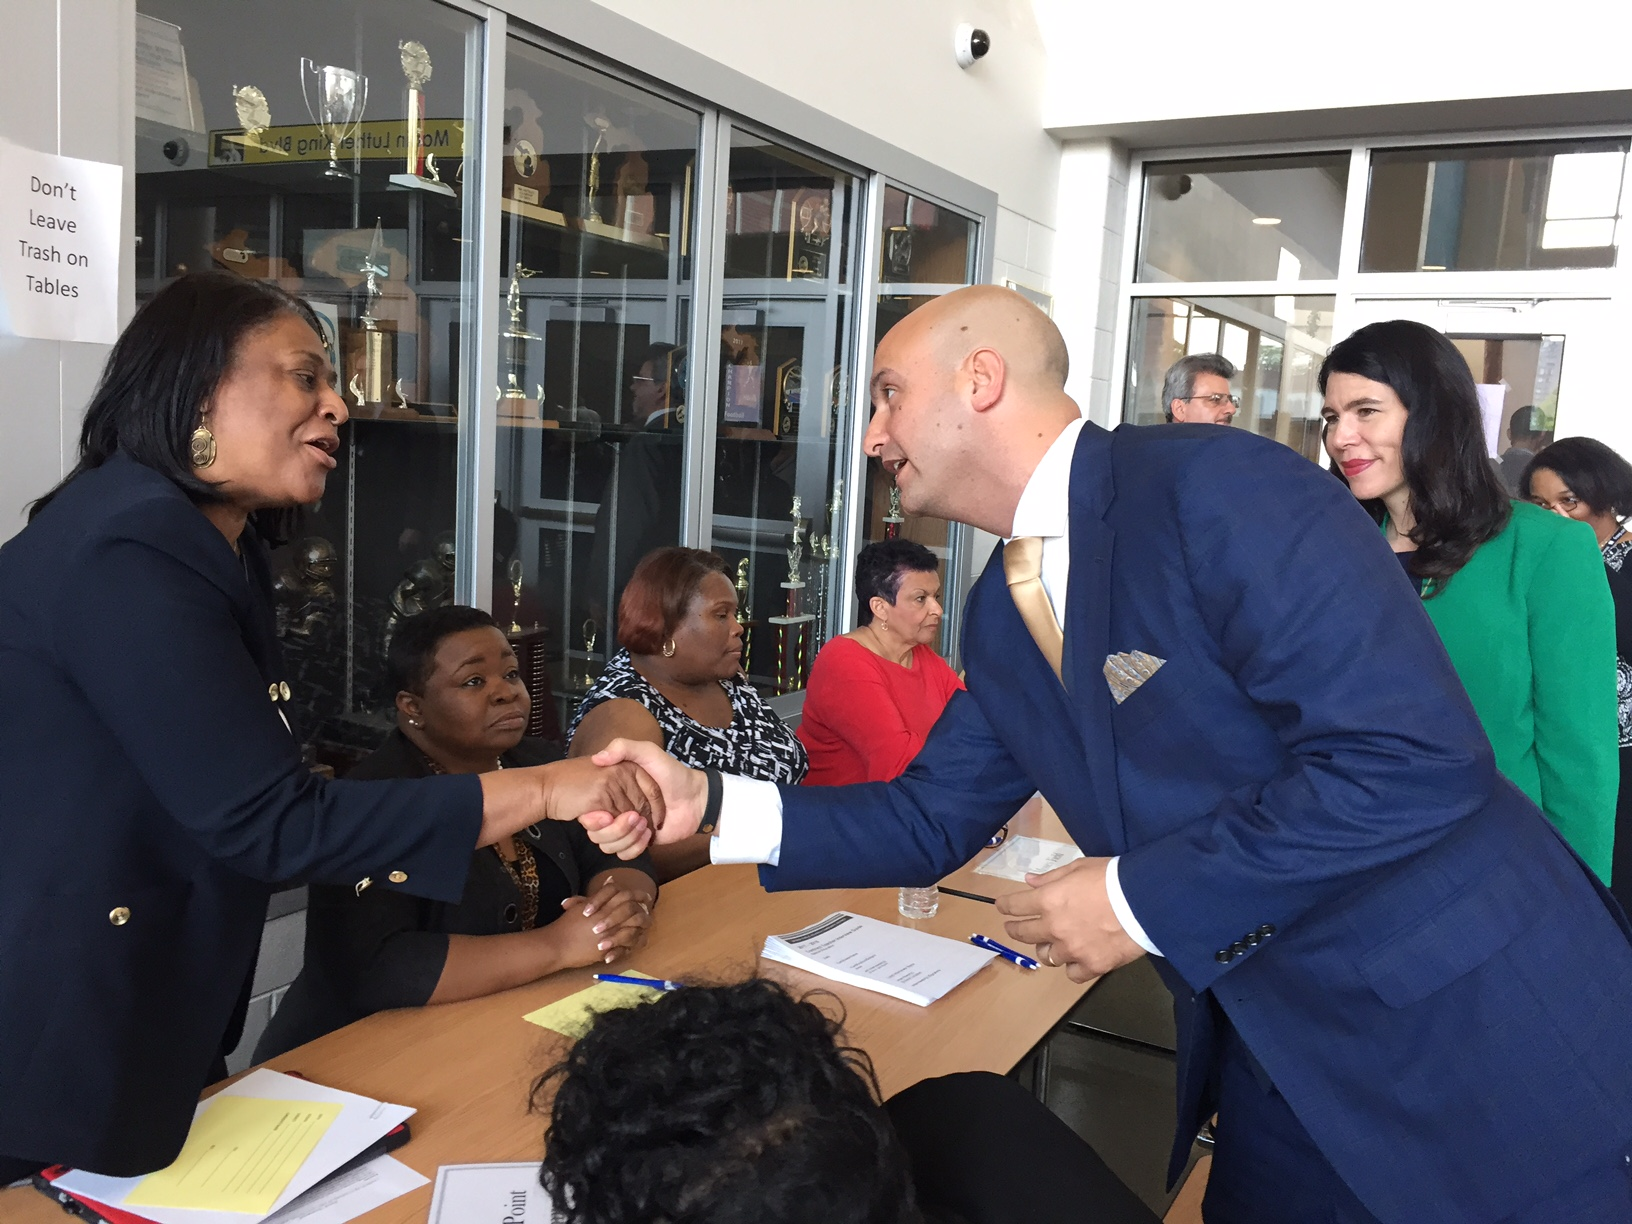 On his first day as Detroit schools superintendent, Nikolai Vitti, with former interim superintendent Alycia Meriweather, greets principals at a teacher hiring fair at Martin Luther King Jr. High School.